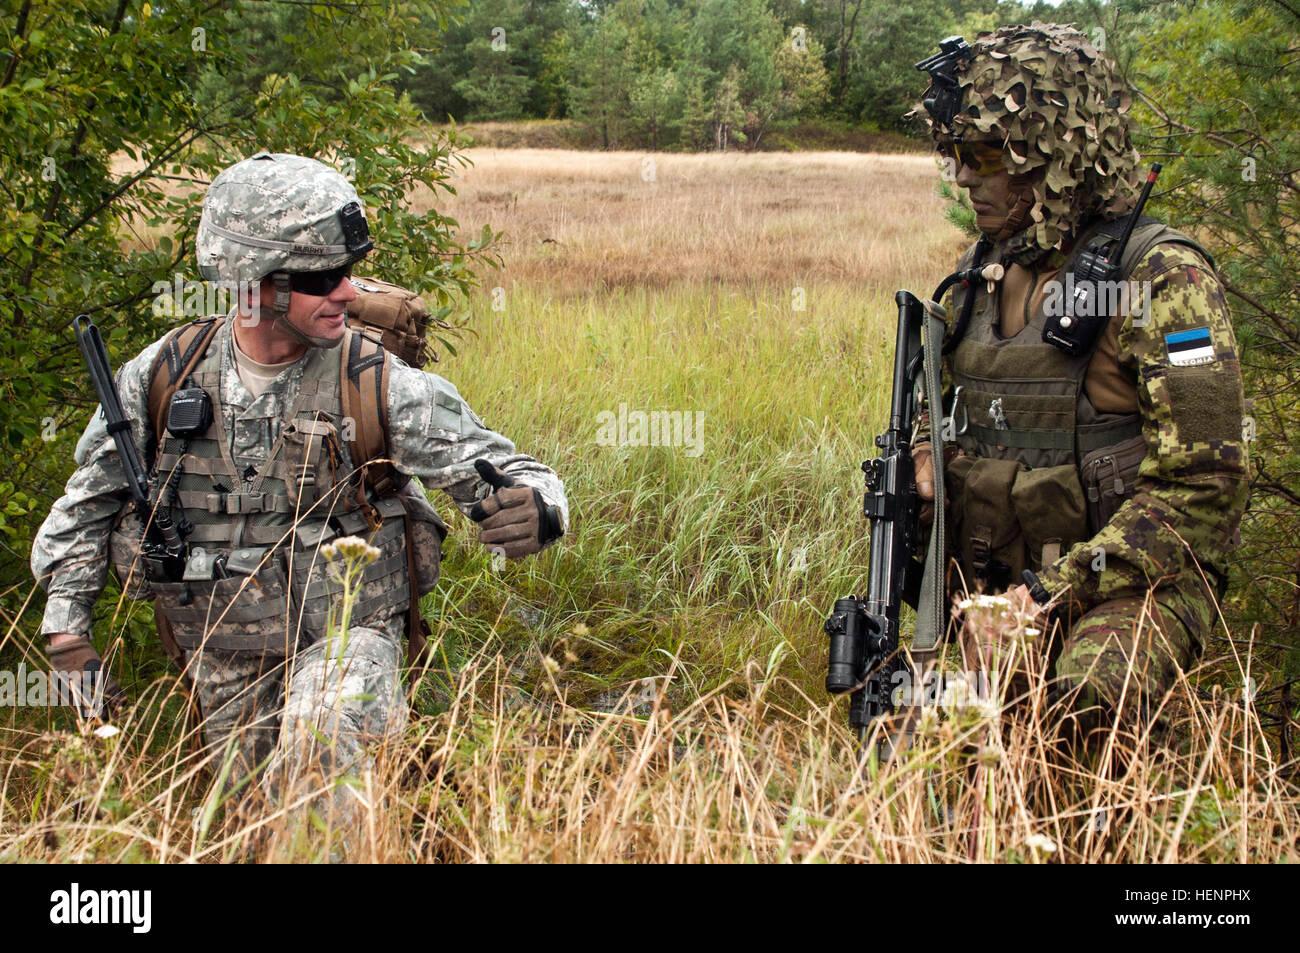 Staff Sgt. Ross A. Murphy (left), a Raleigh, N.C., native serving as a platoon sergeant in Company B, 2nd Battalion, Stock Photo